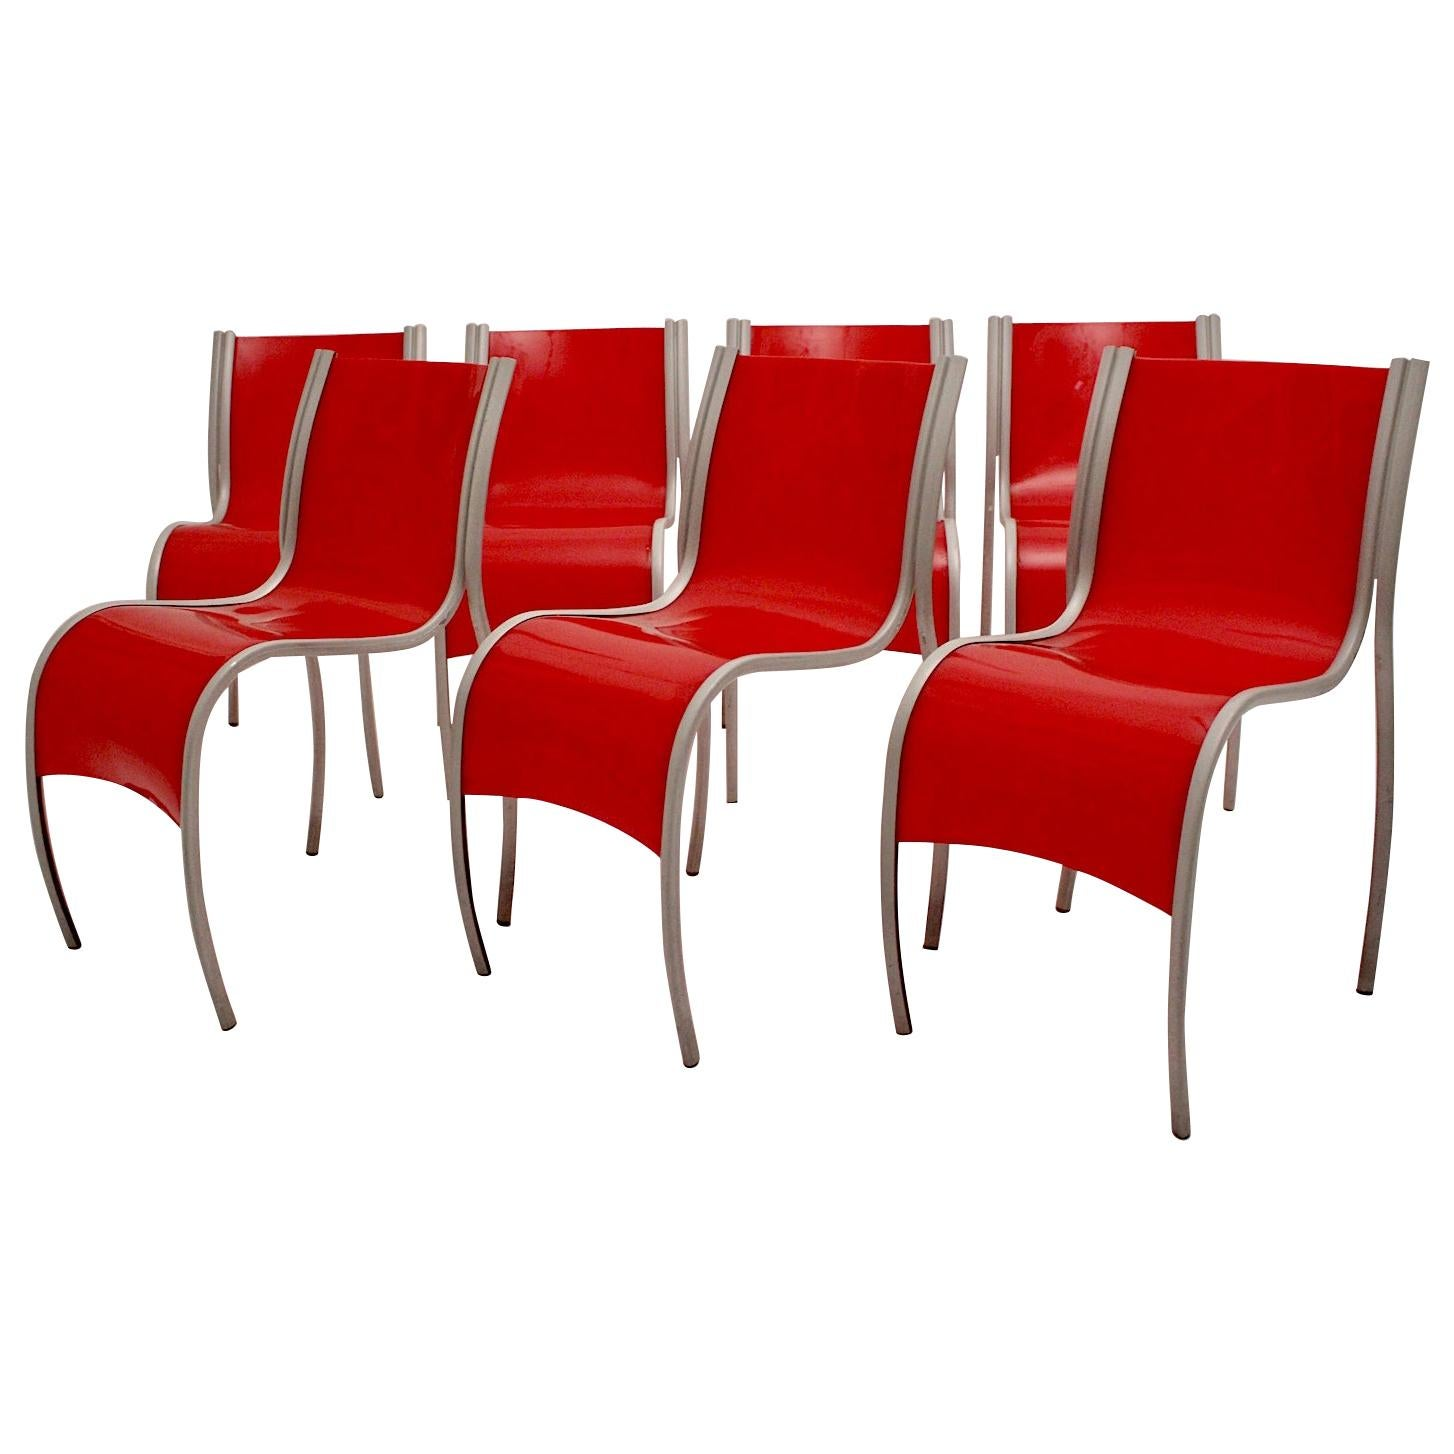 Modern Red Plastic Vintage Seven Dining Chairs by Ron Arad Kartell Italy, 1999